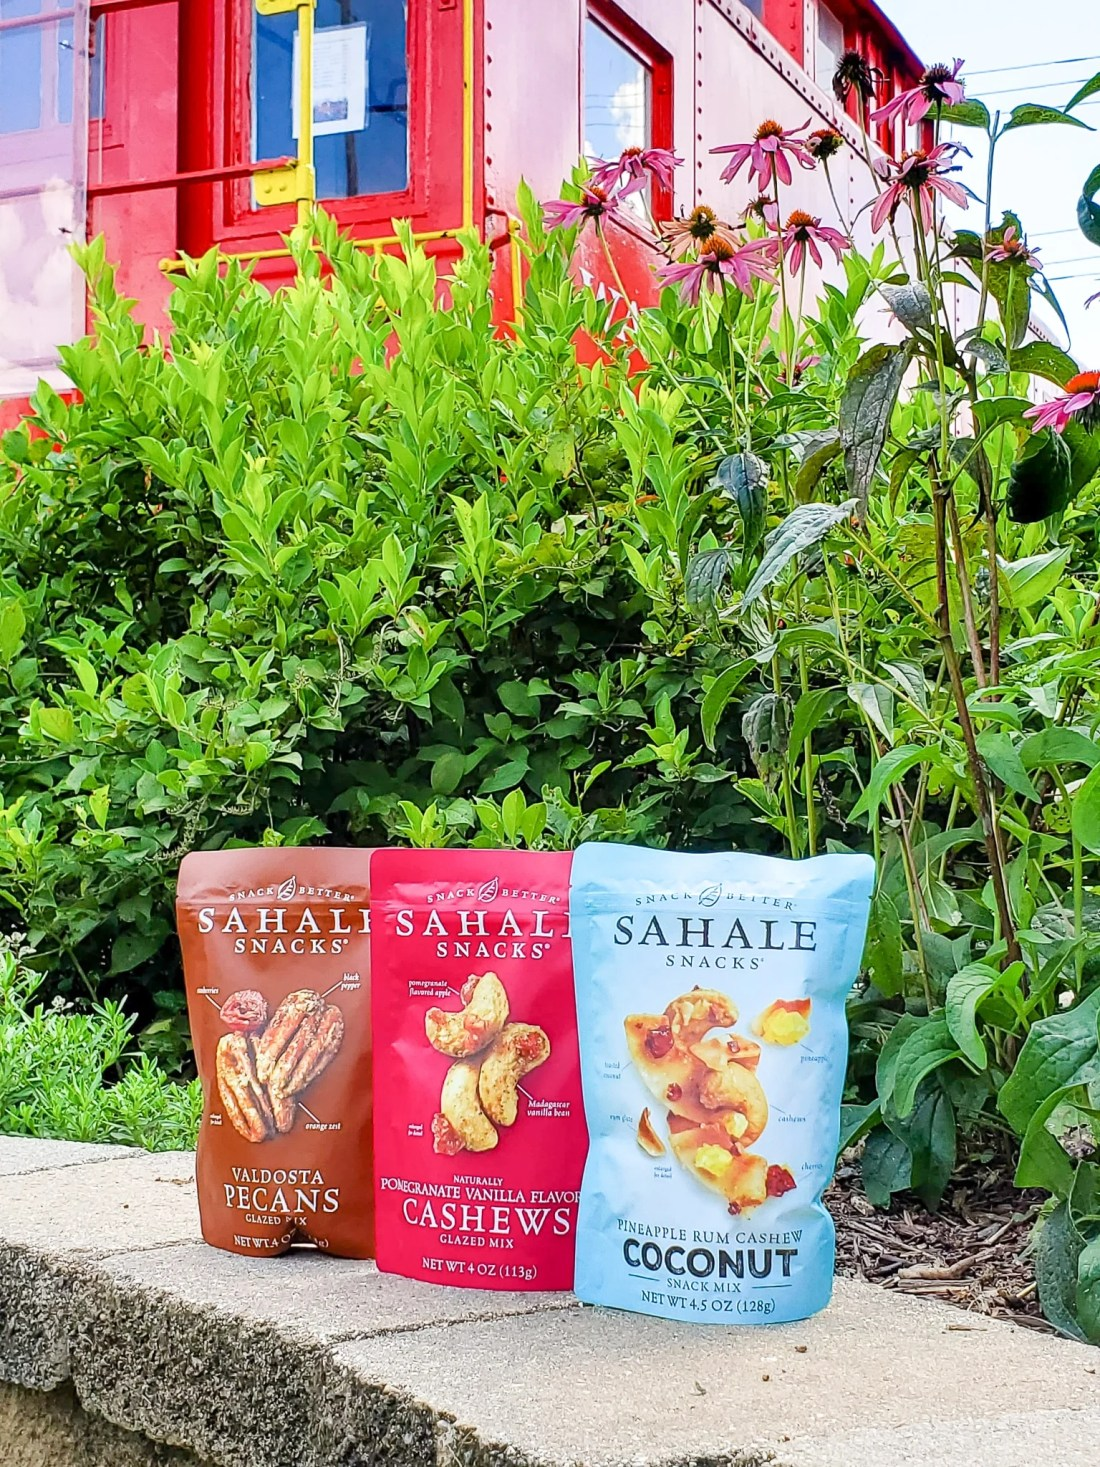 Sahale Snacks Flavors. Snack easy with Sahale snacks, they are the delicious option that fit seemlessly into your everyday lives. Sahale Snacks use unique combinations and layers of flavor with real ingredients to elevate your everyday snacking experience.